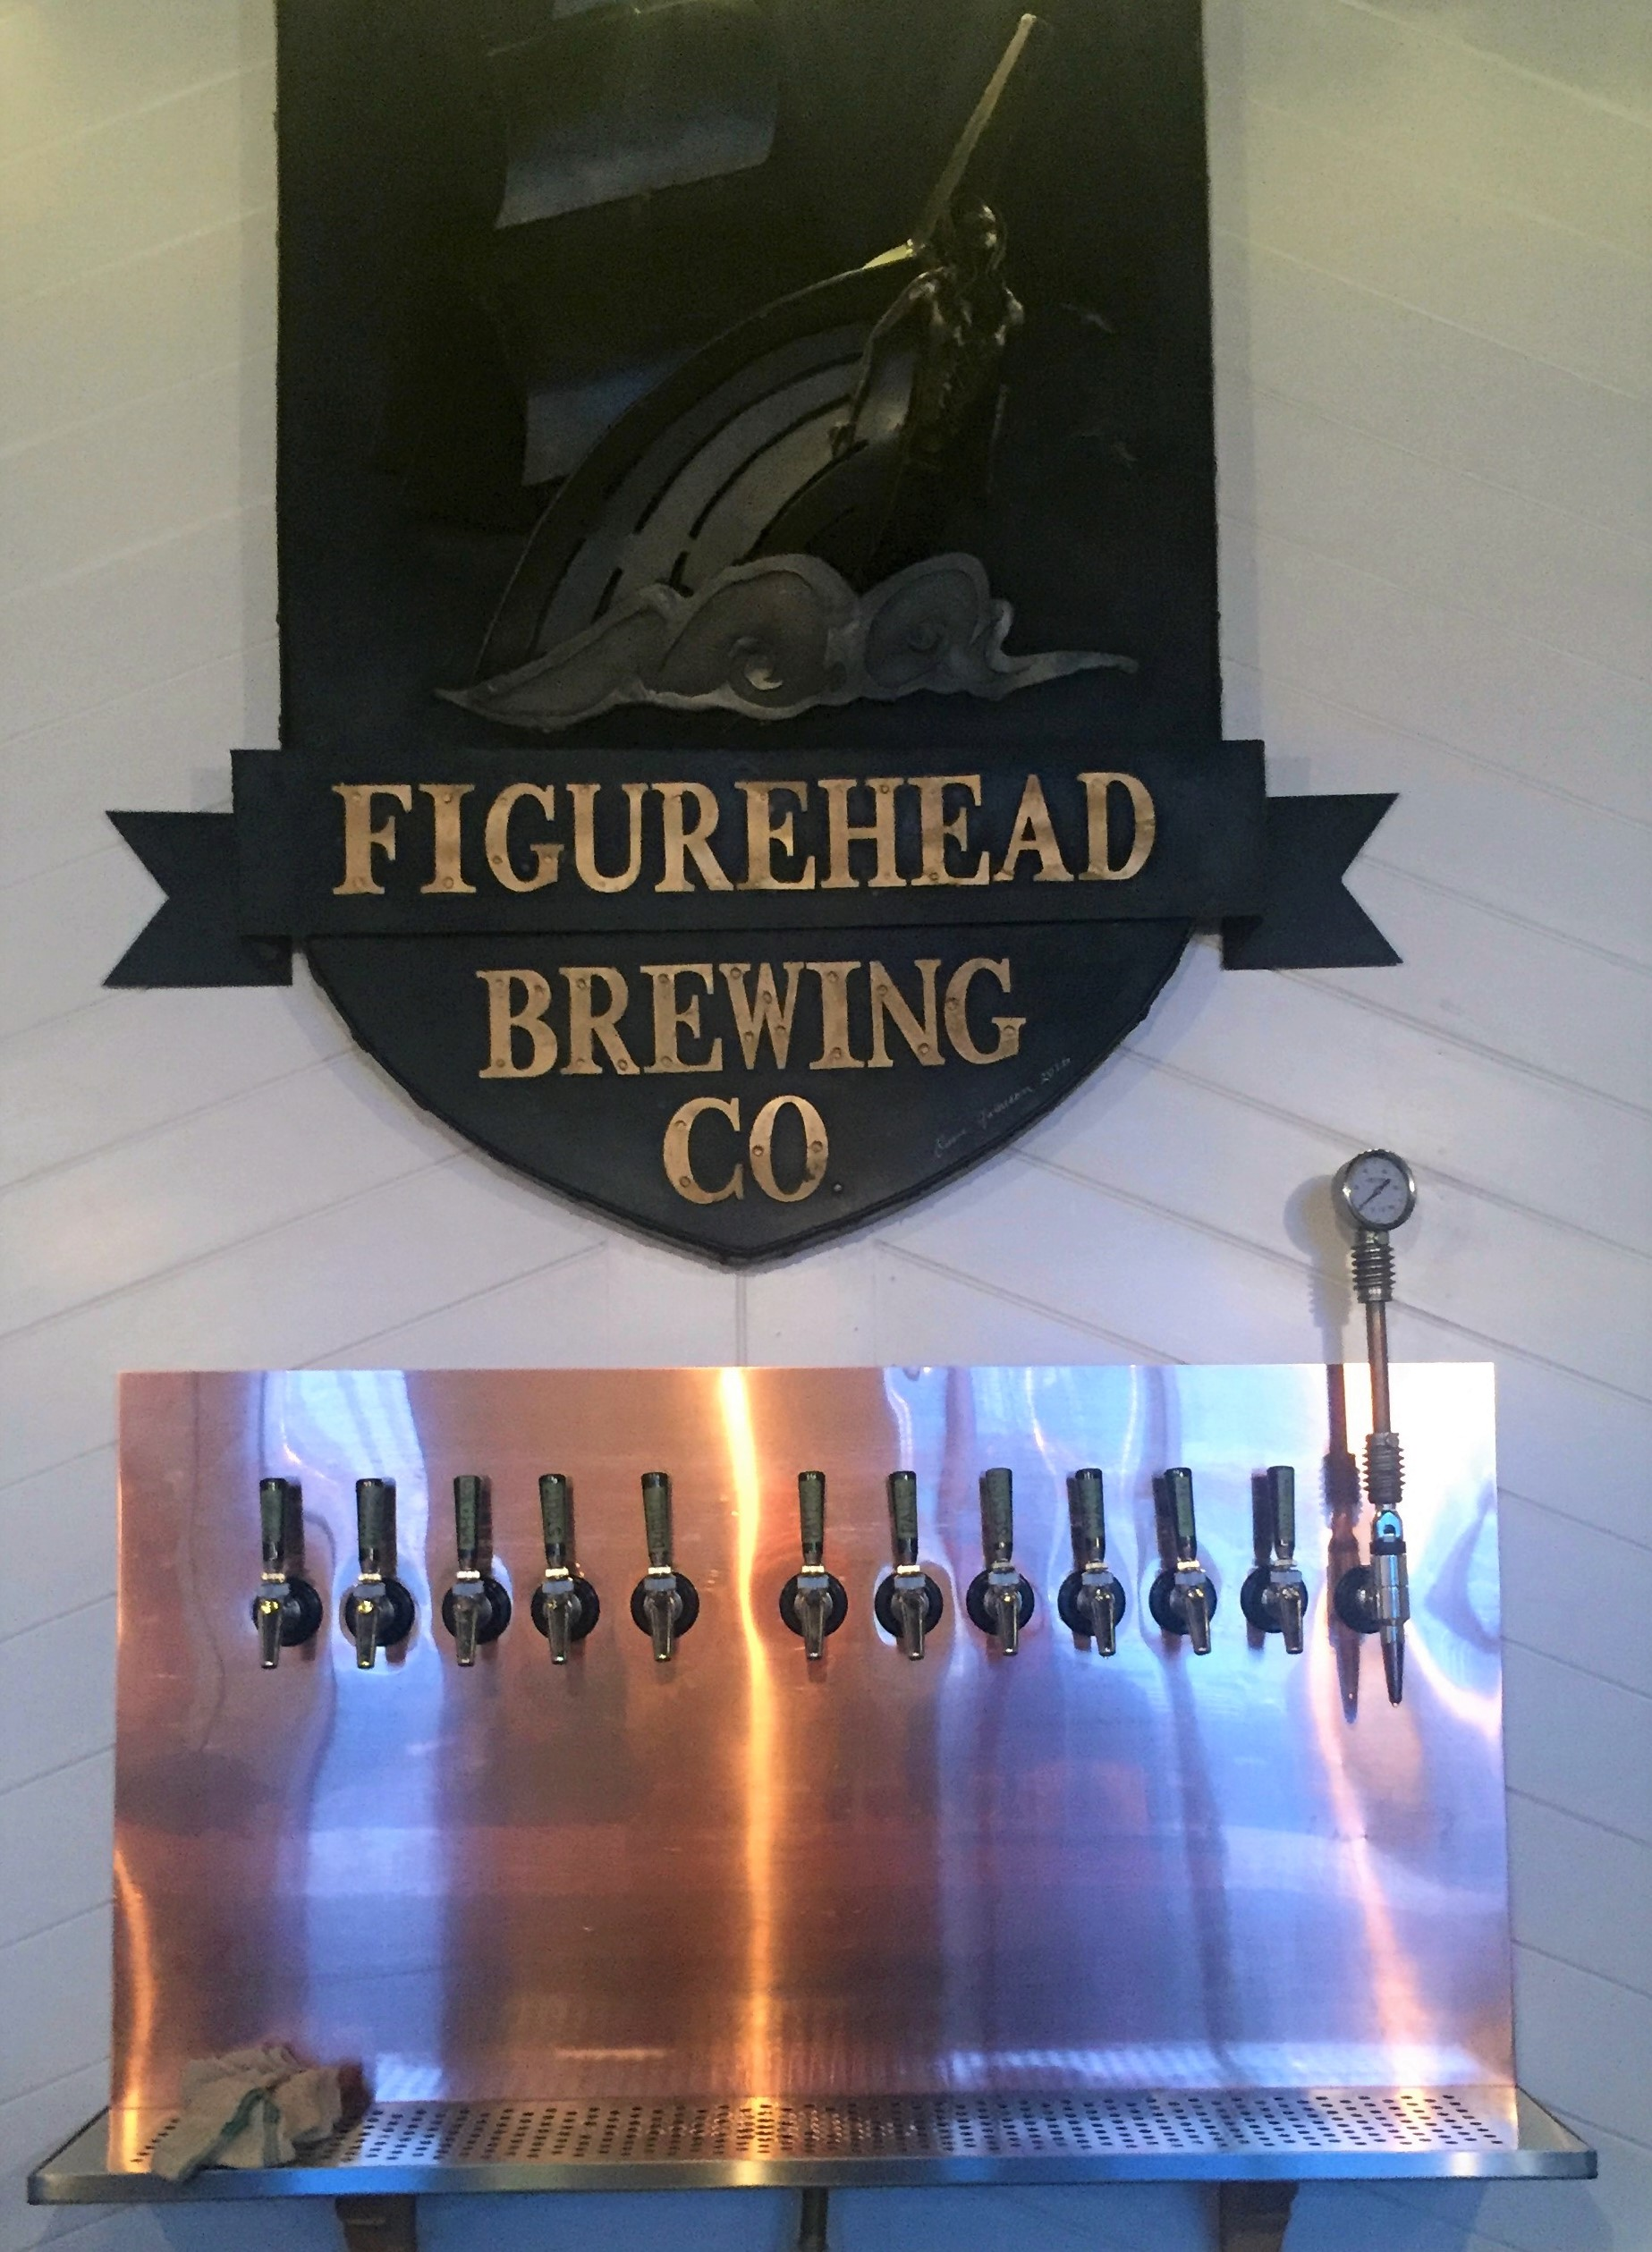 12 taps of Figurehead